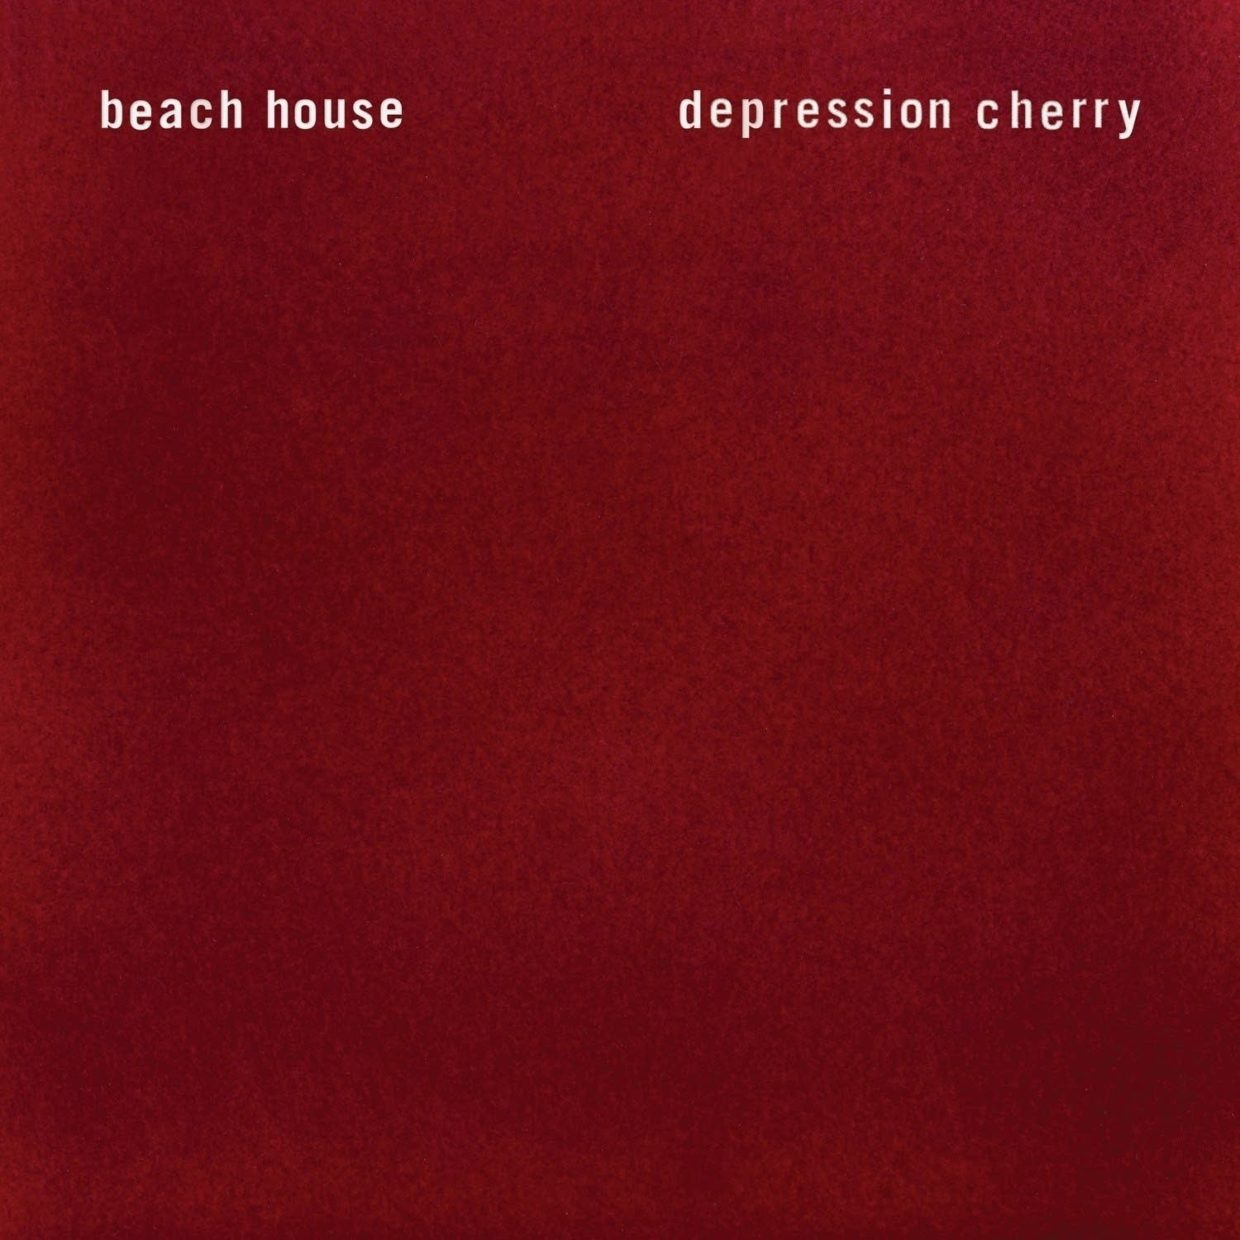 beach house depression cherry album review